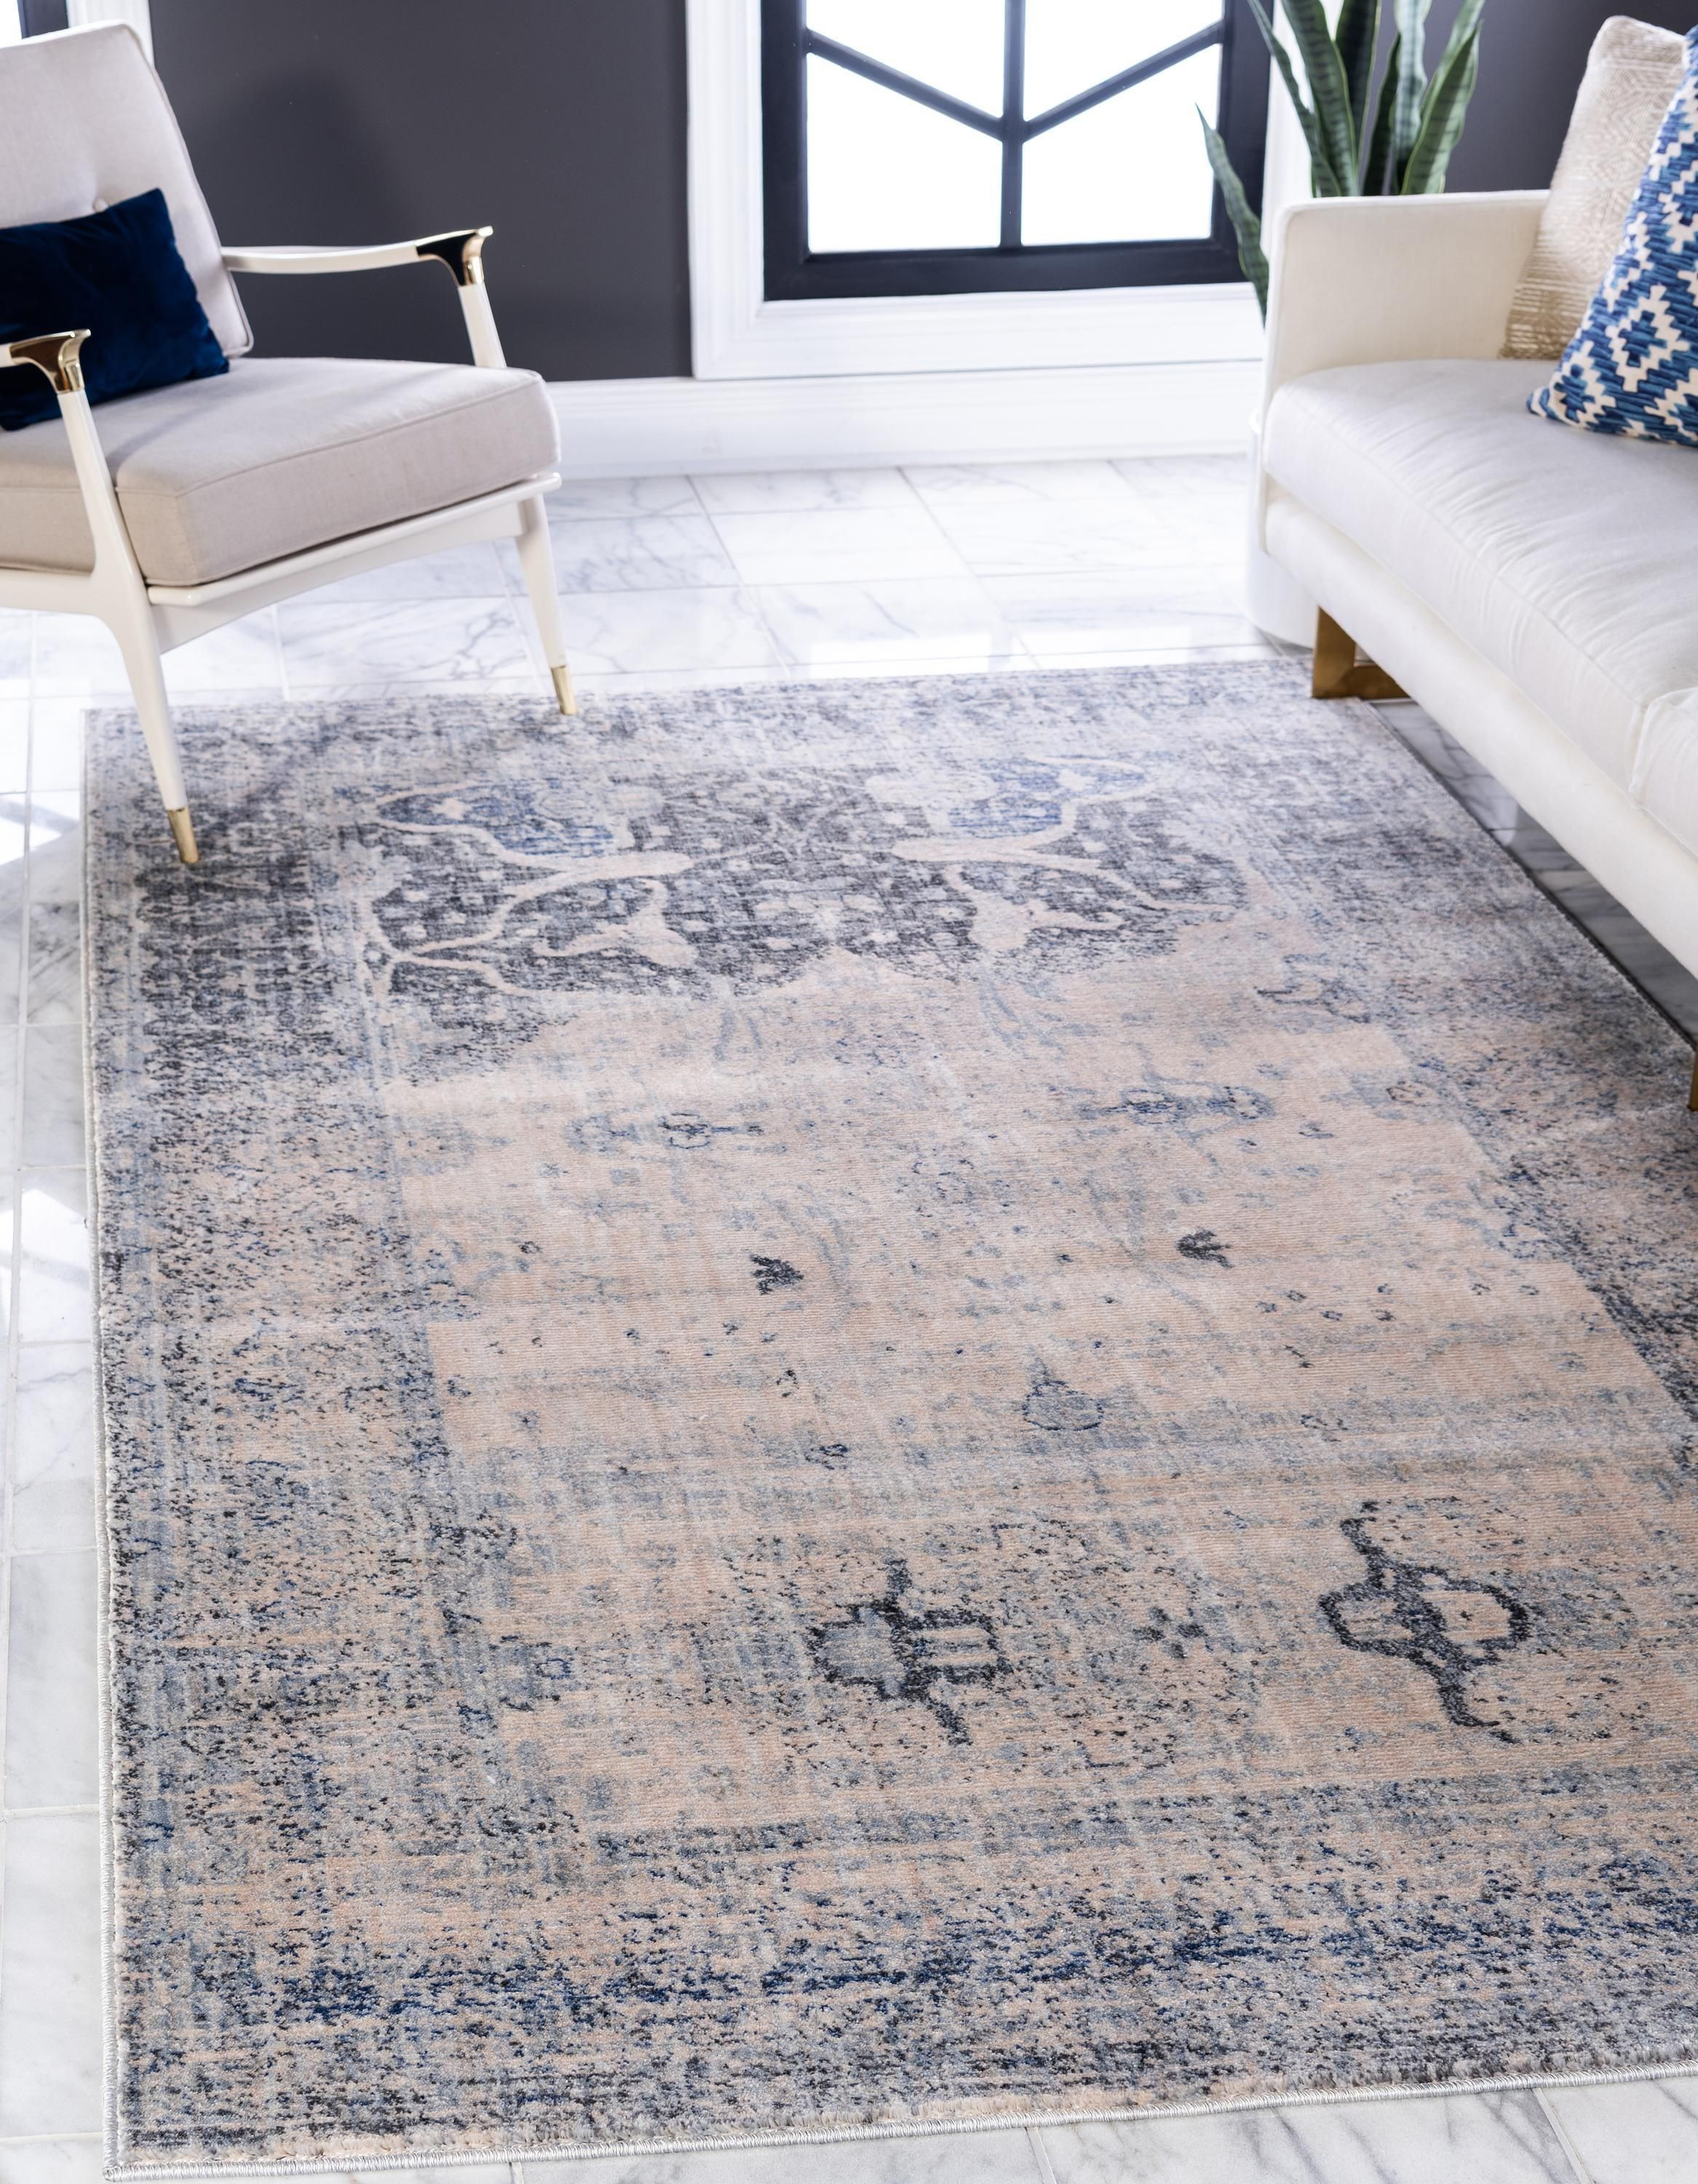 Gray 8 X 10 Oxfordshire Rug Rugs Com Modern Area Rugs Area Rugs Round Rugs